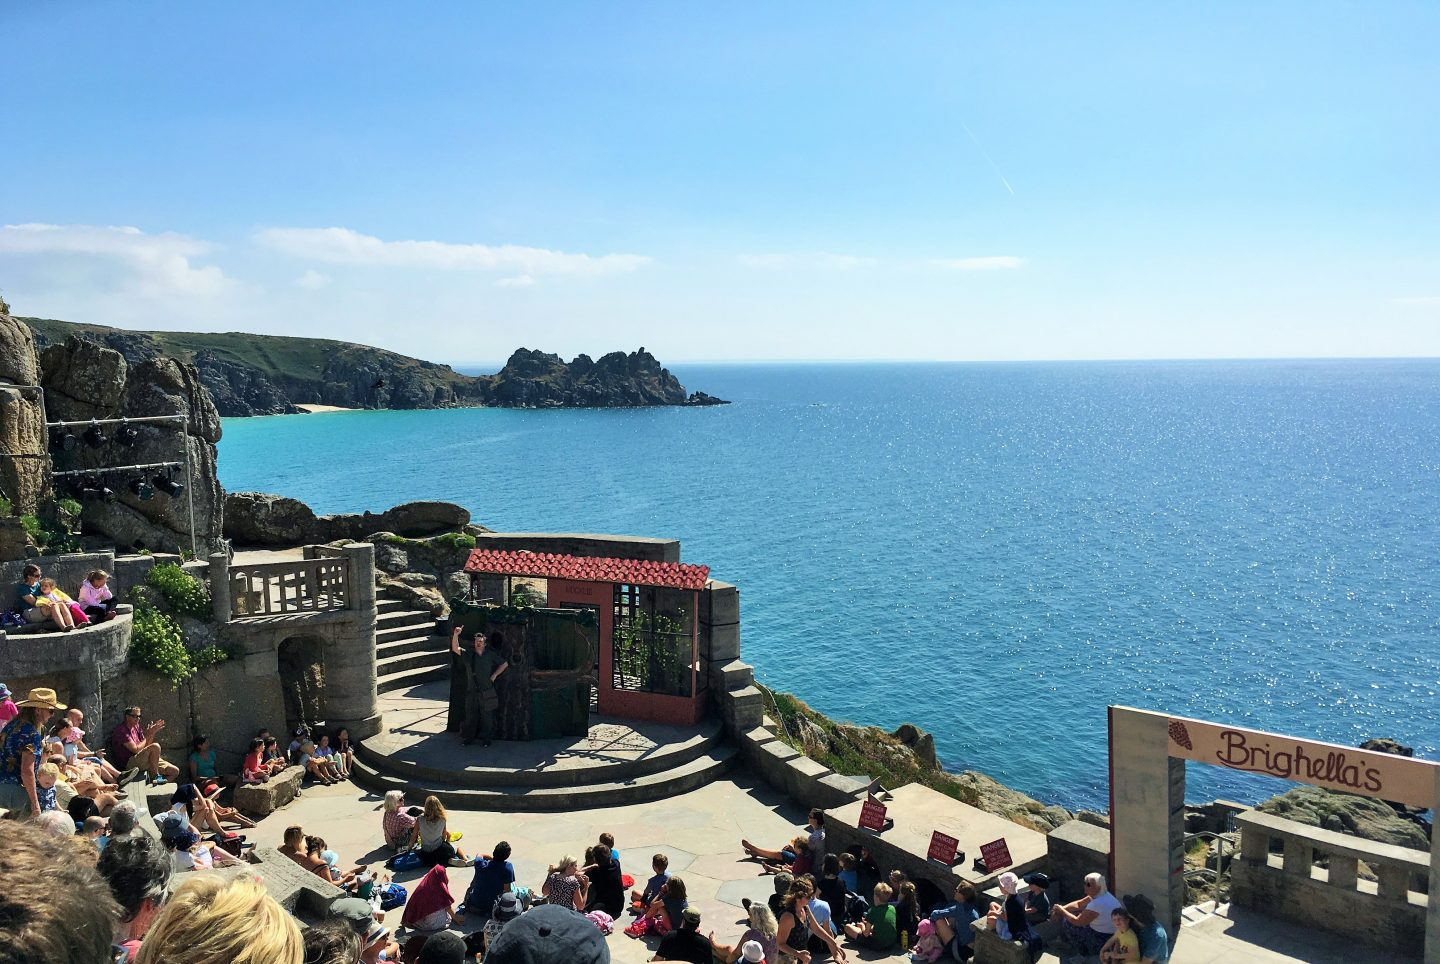 Craig Johnson: Squashbox Theatre at the Minack Theatre in Cornwall